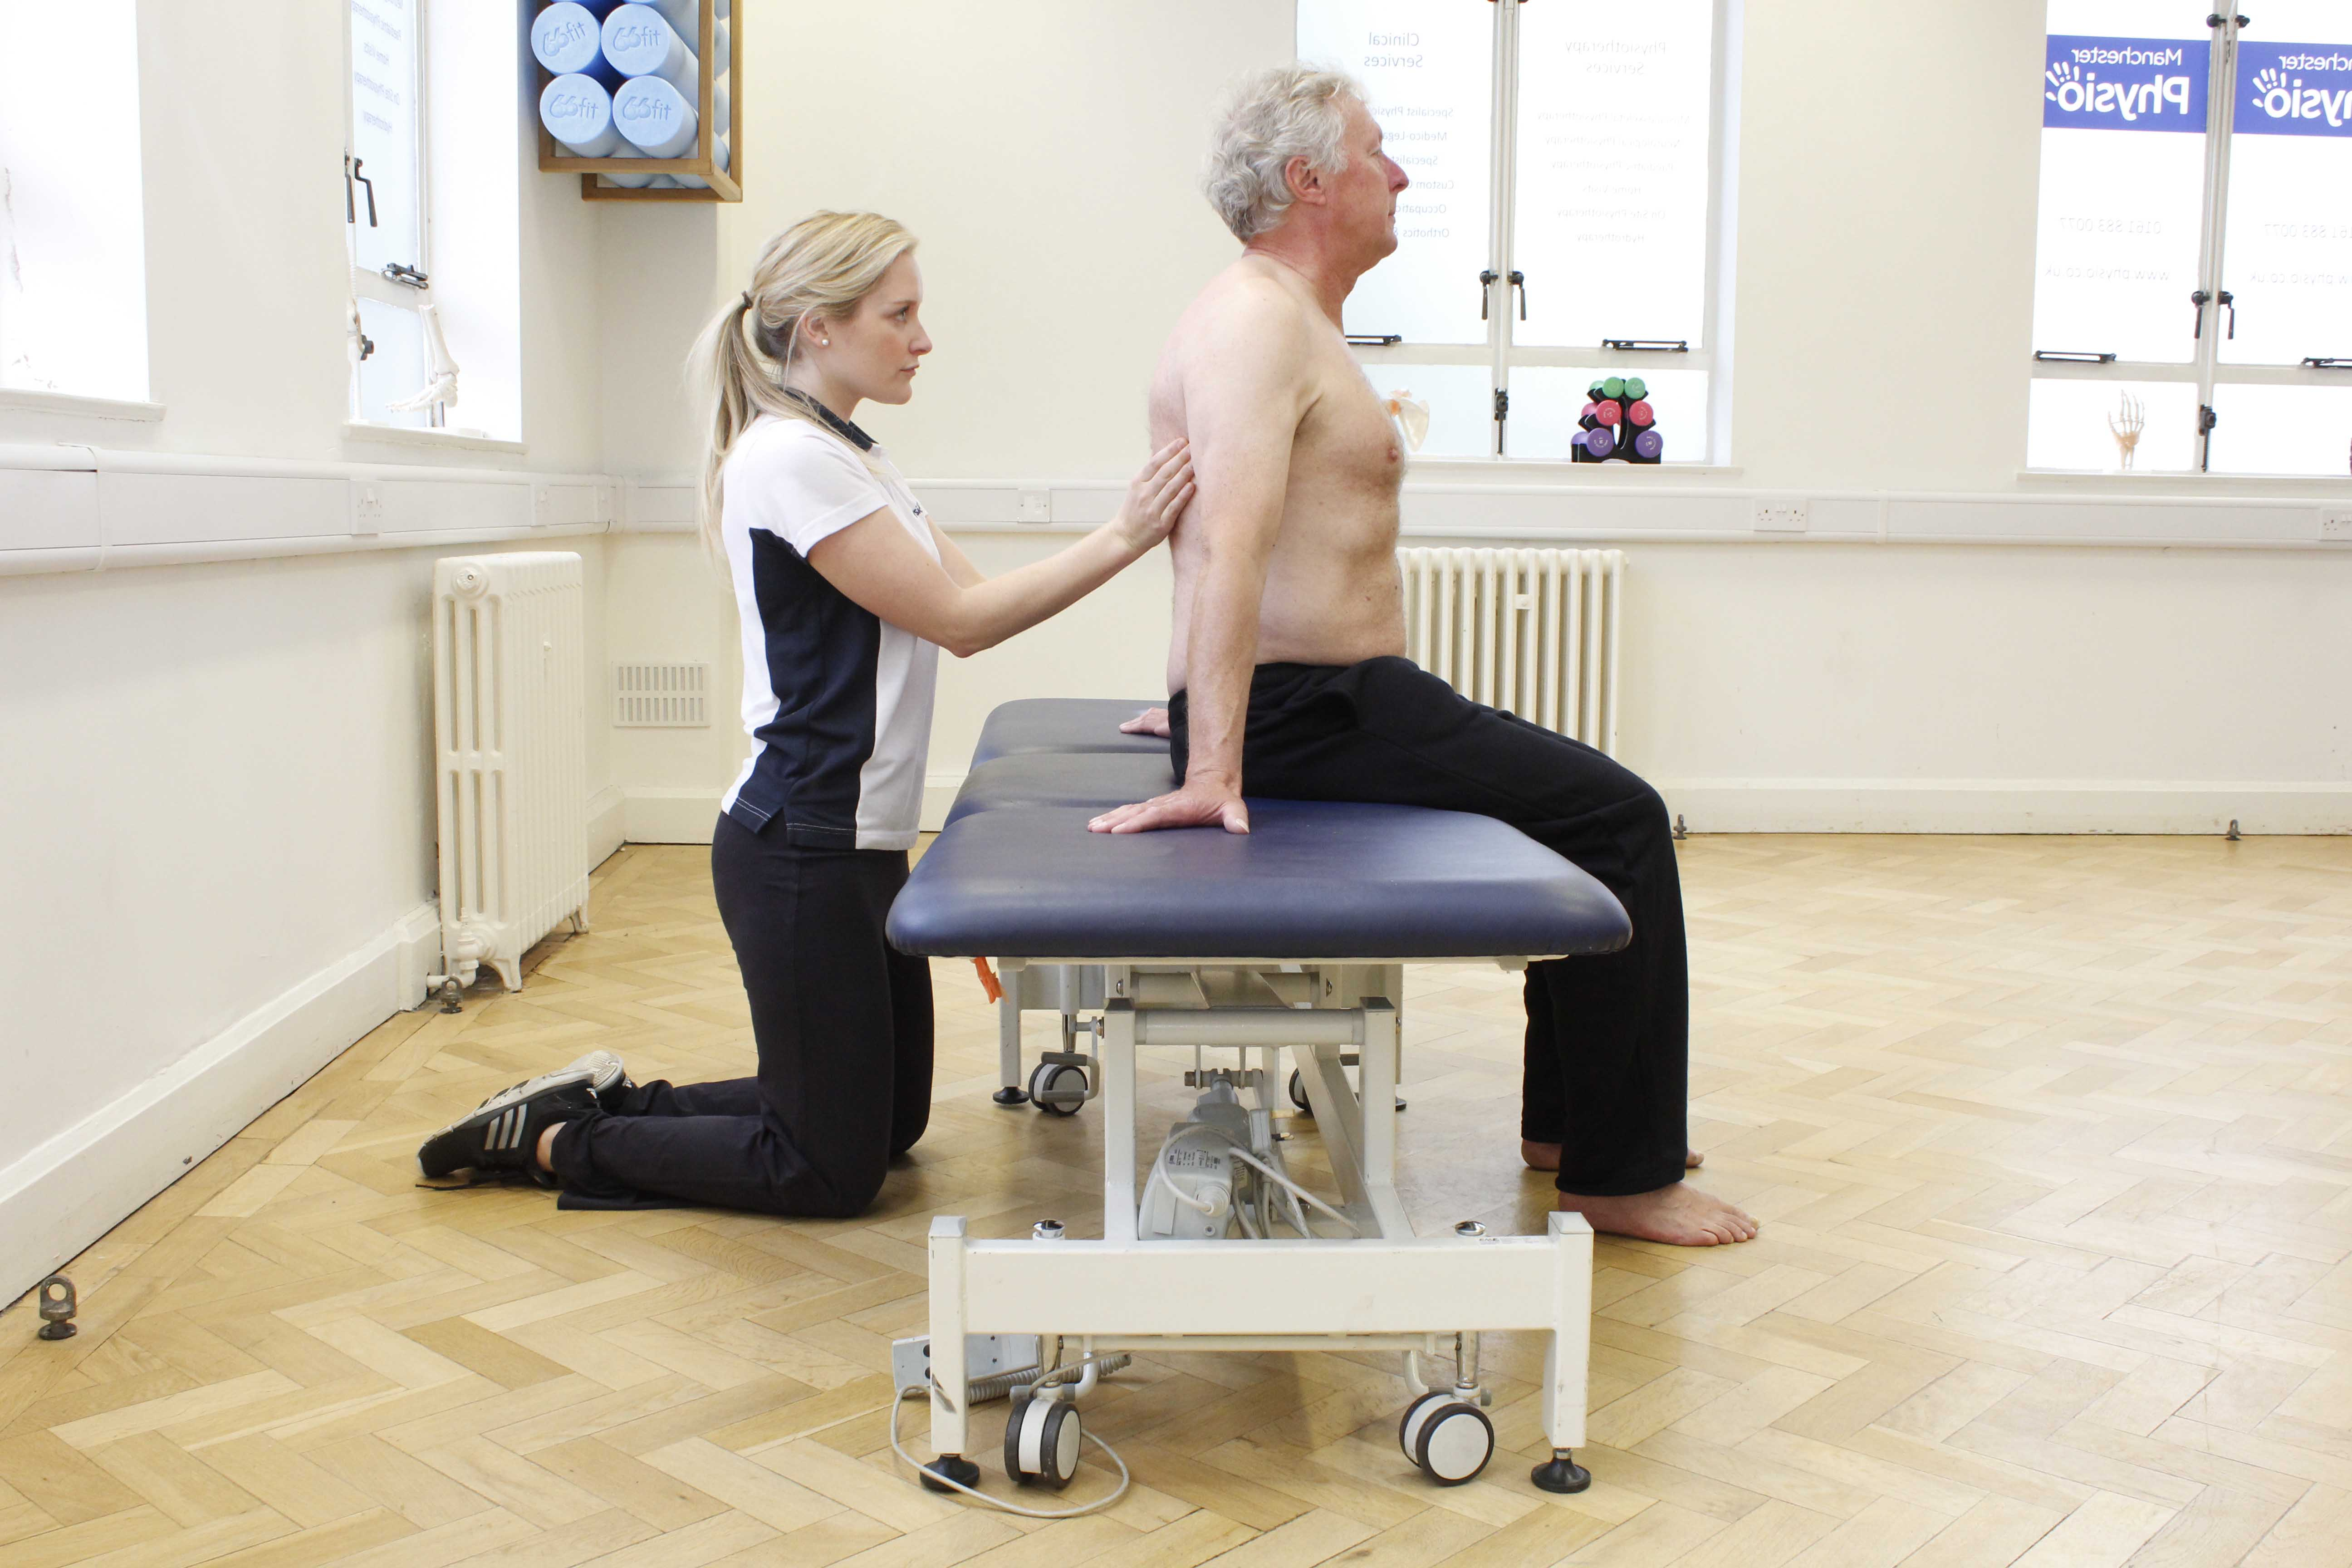 Active cycle of breathing exercises  and postural drainage exercises supervised by a specialist physiotherapist